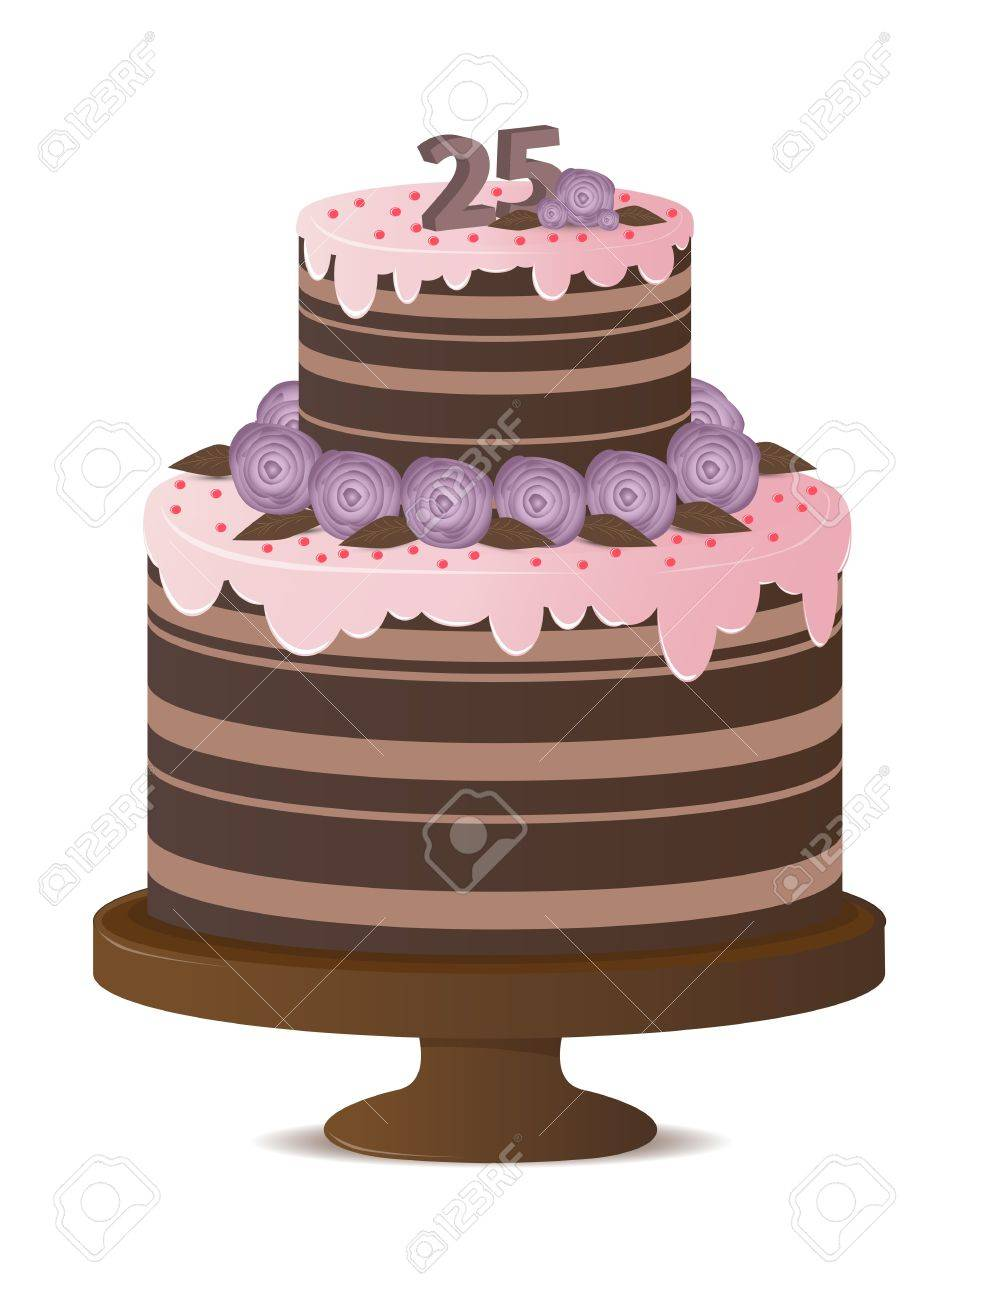 Birthday Cake With Numbers 25 Royalty Free Cliparts Vectors And